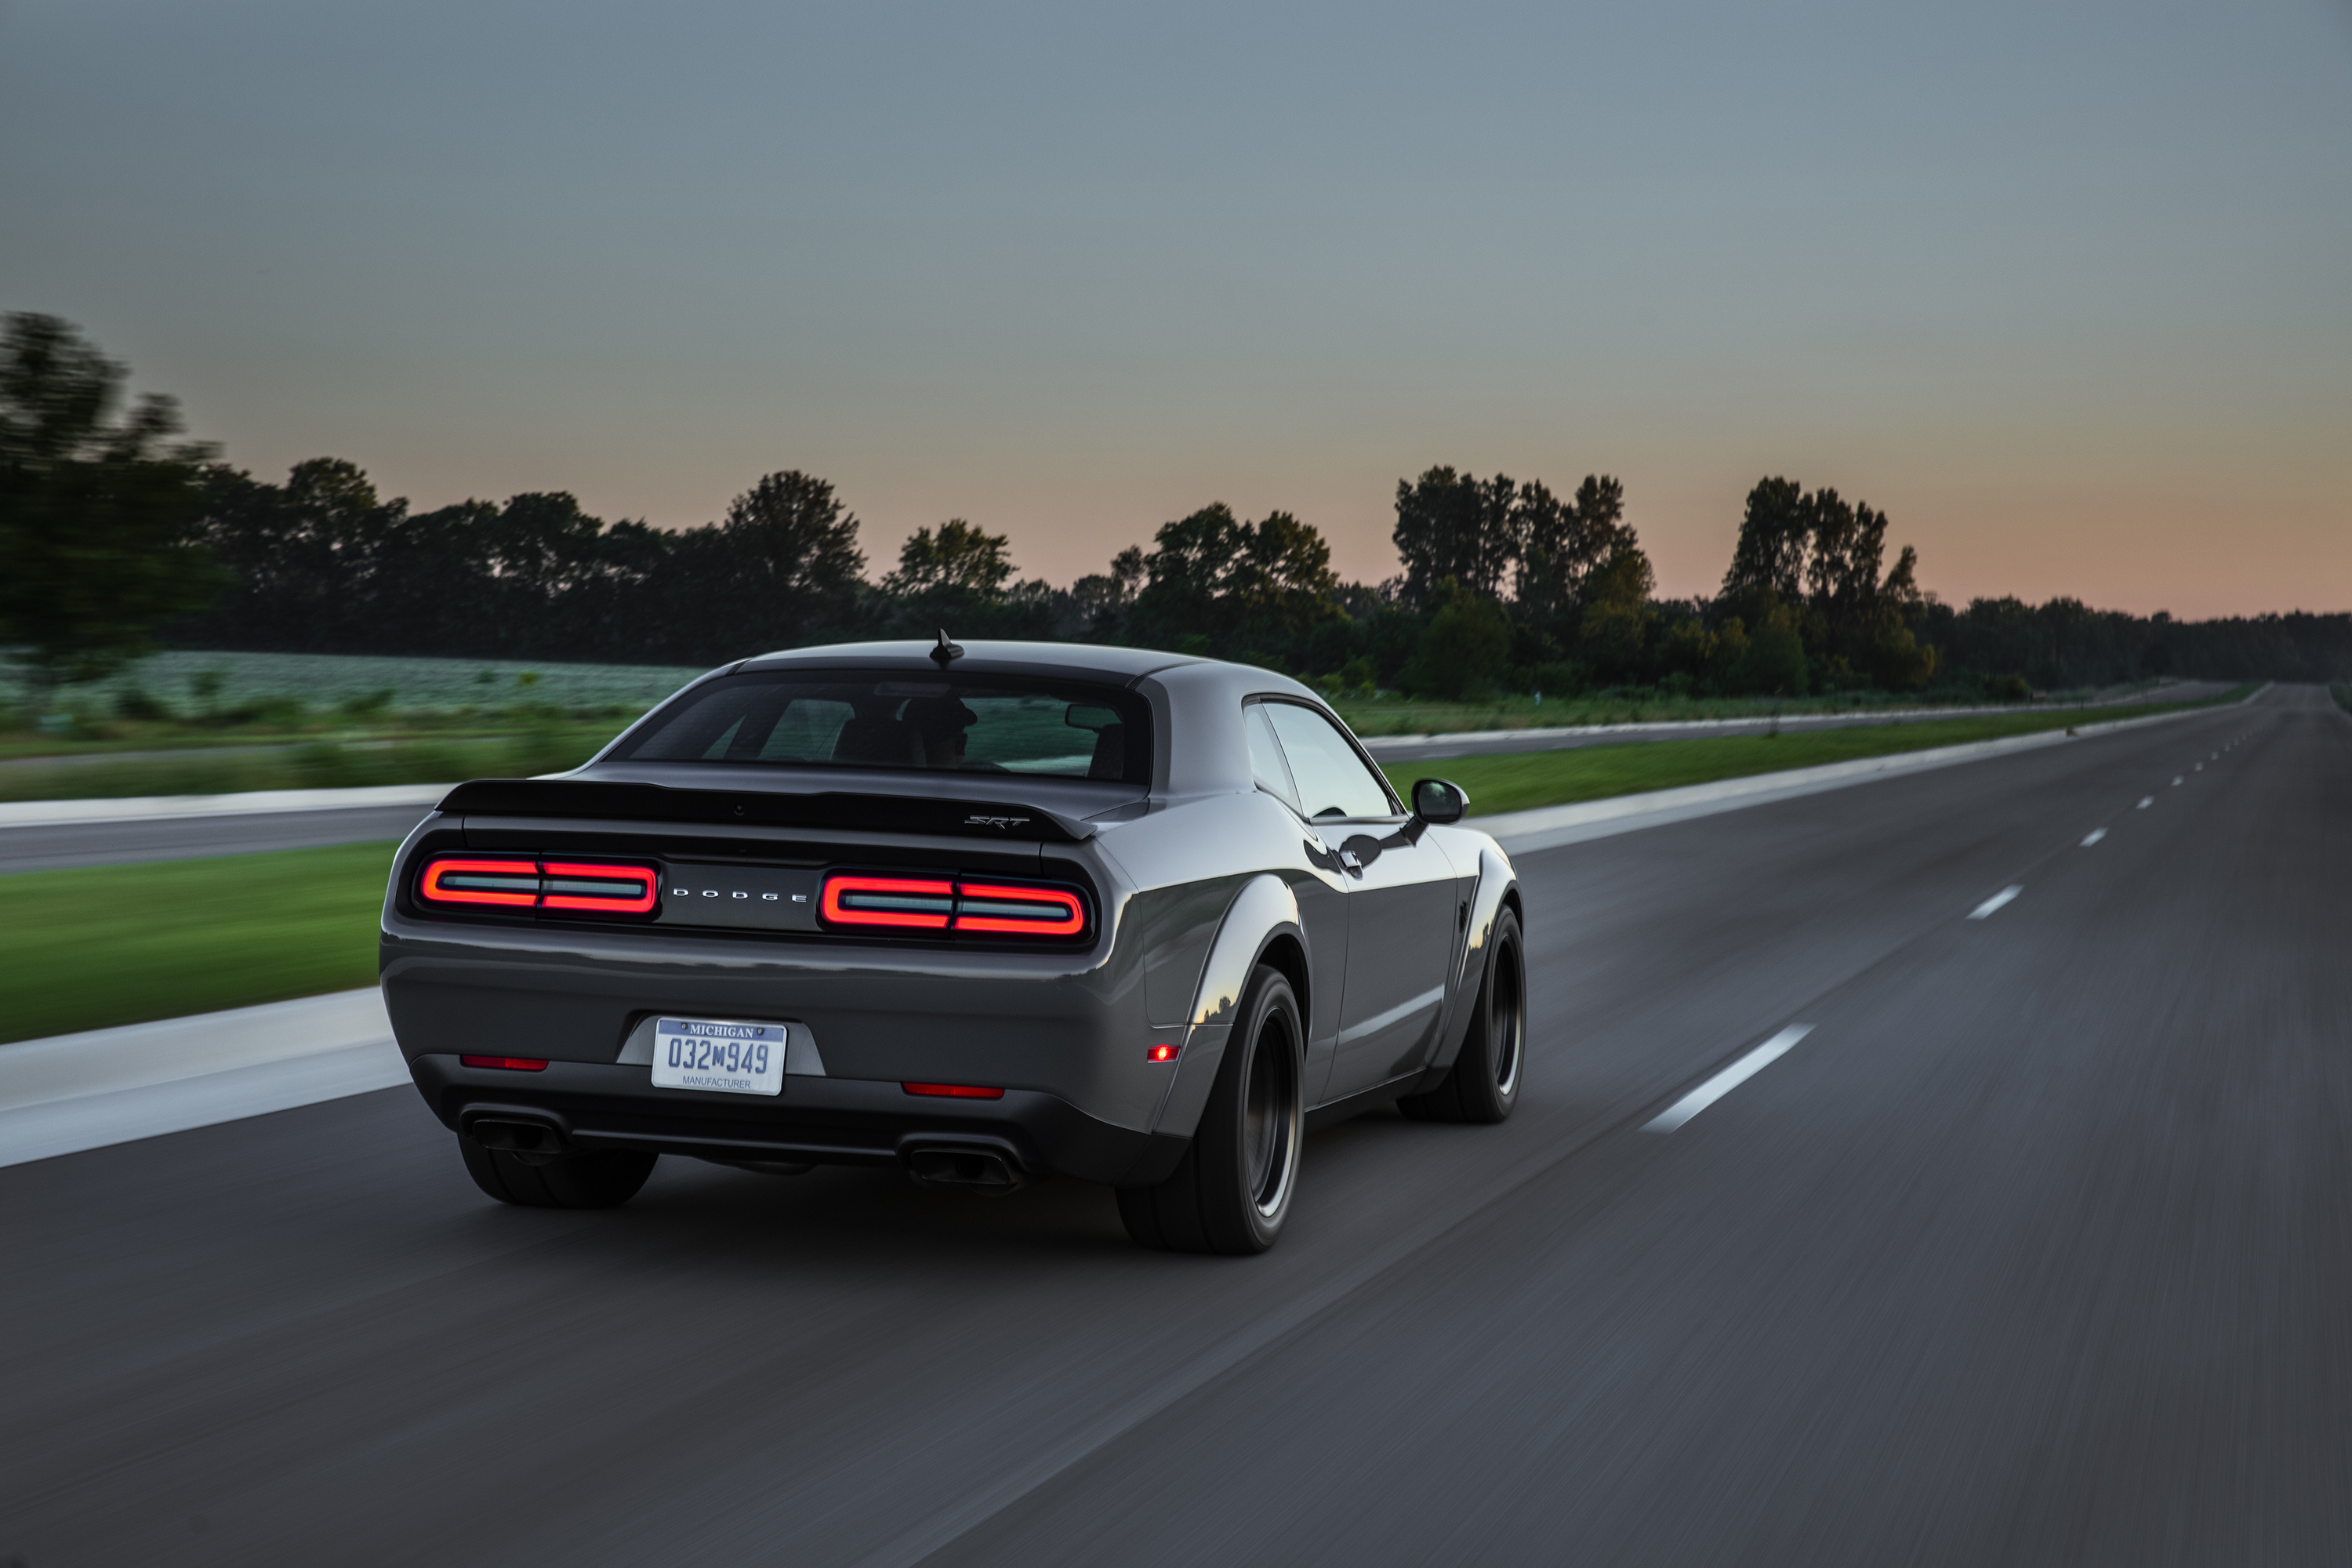 The Challenger SRT is one of the latest, greatest muscle cars